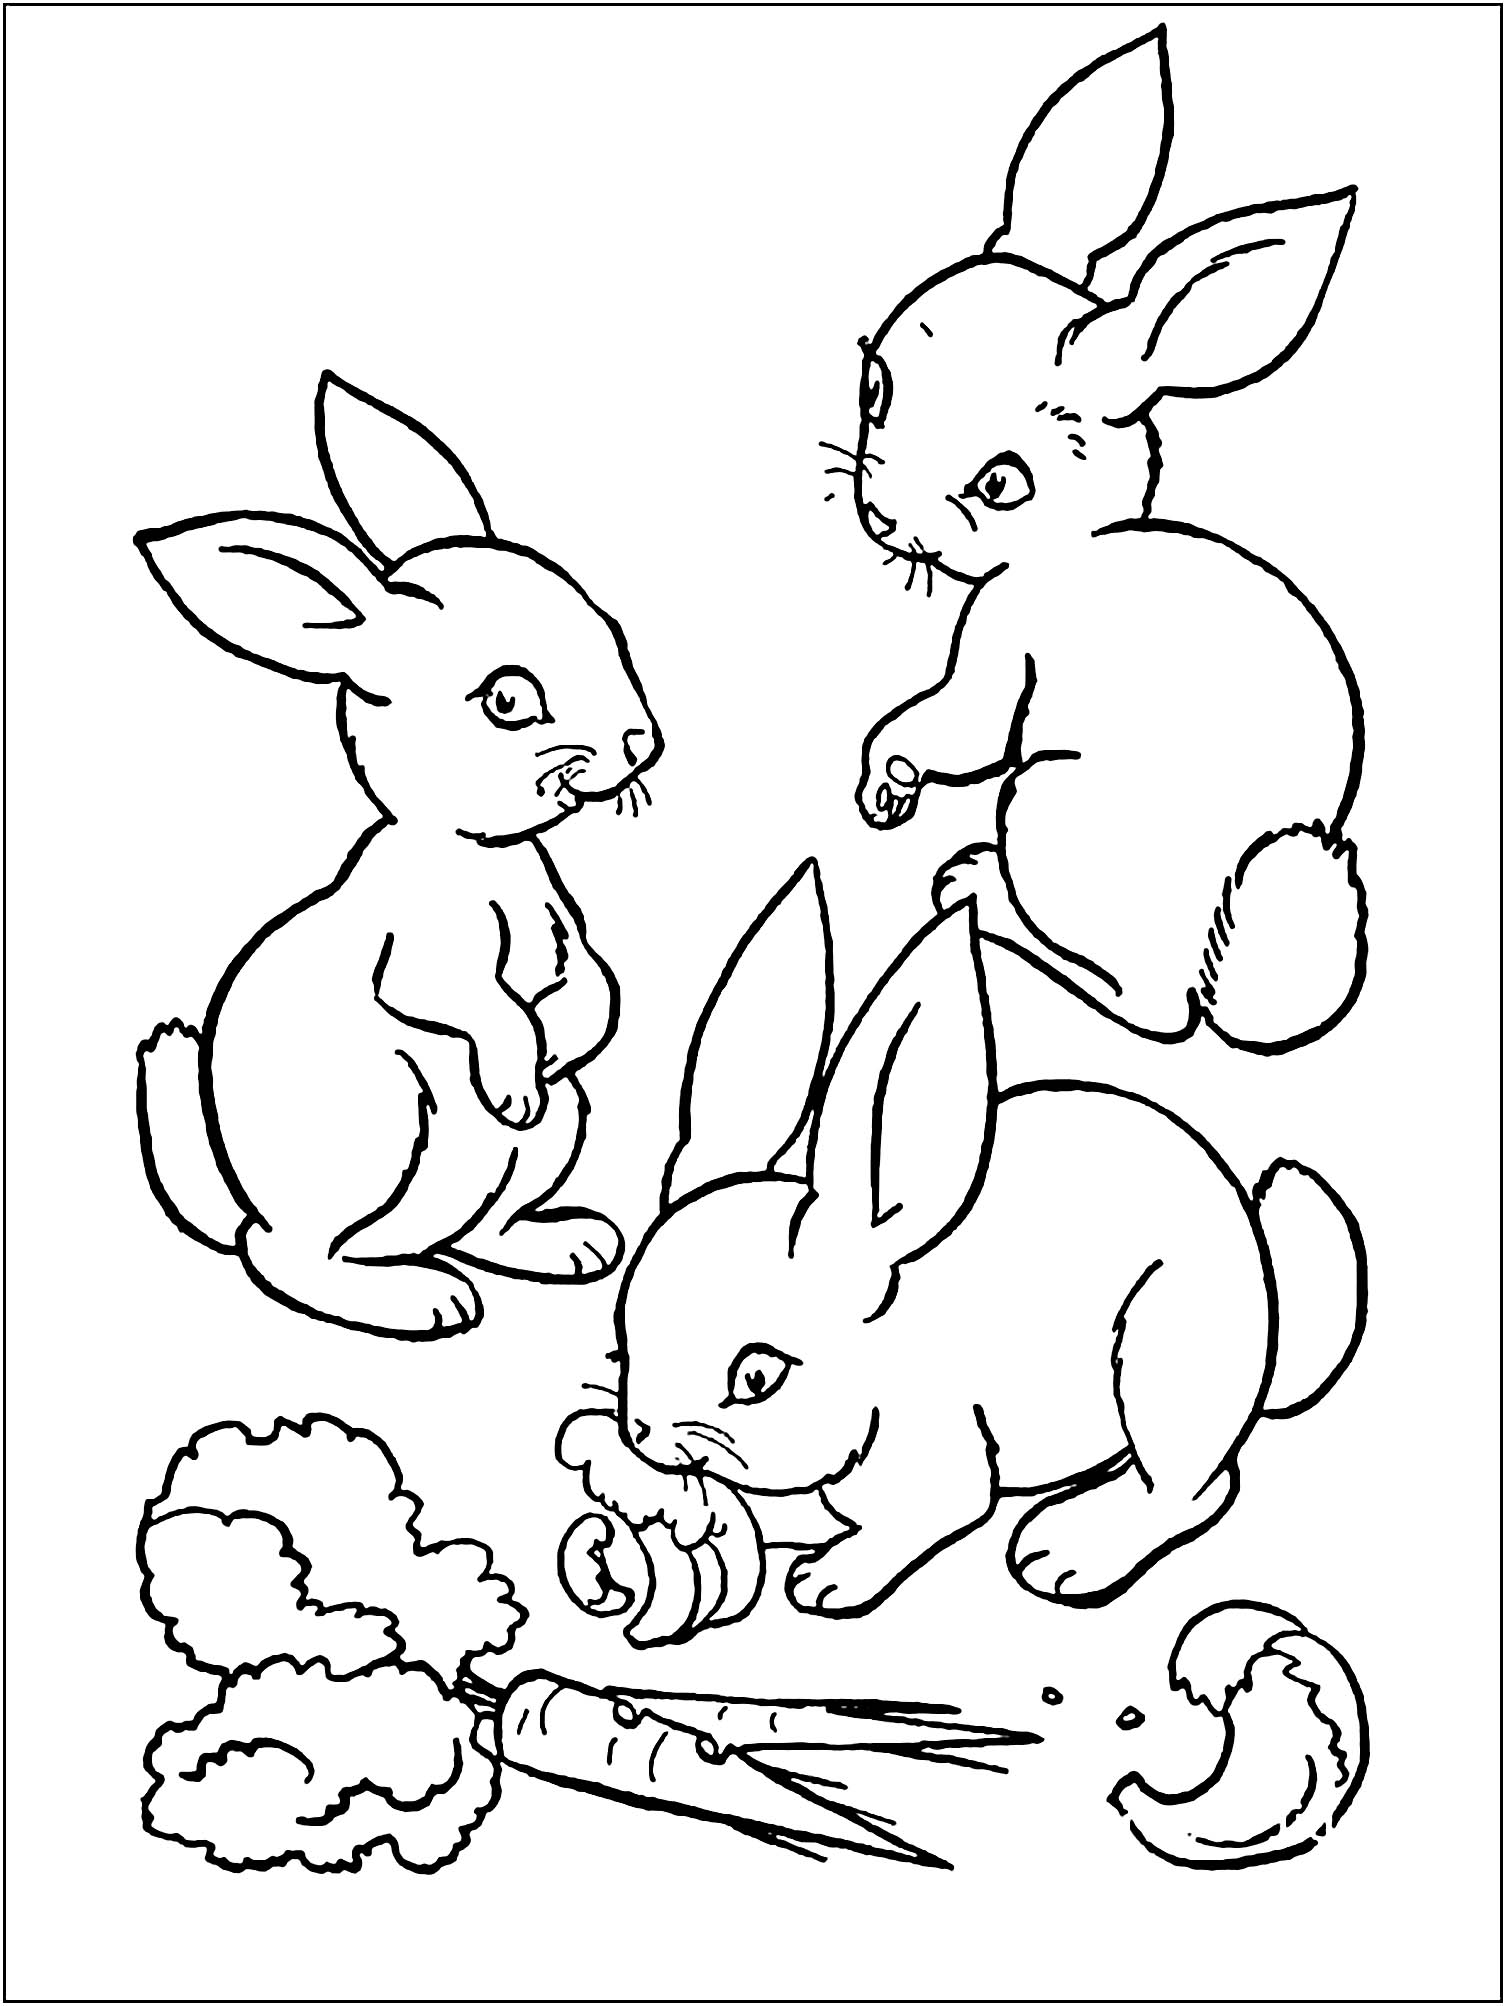 coloring pages of bunny rabbits rabbit to download for free rabbit kids coloring pages of pages coloring bunny rabbits